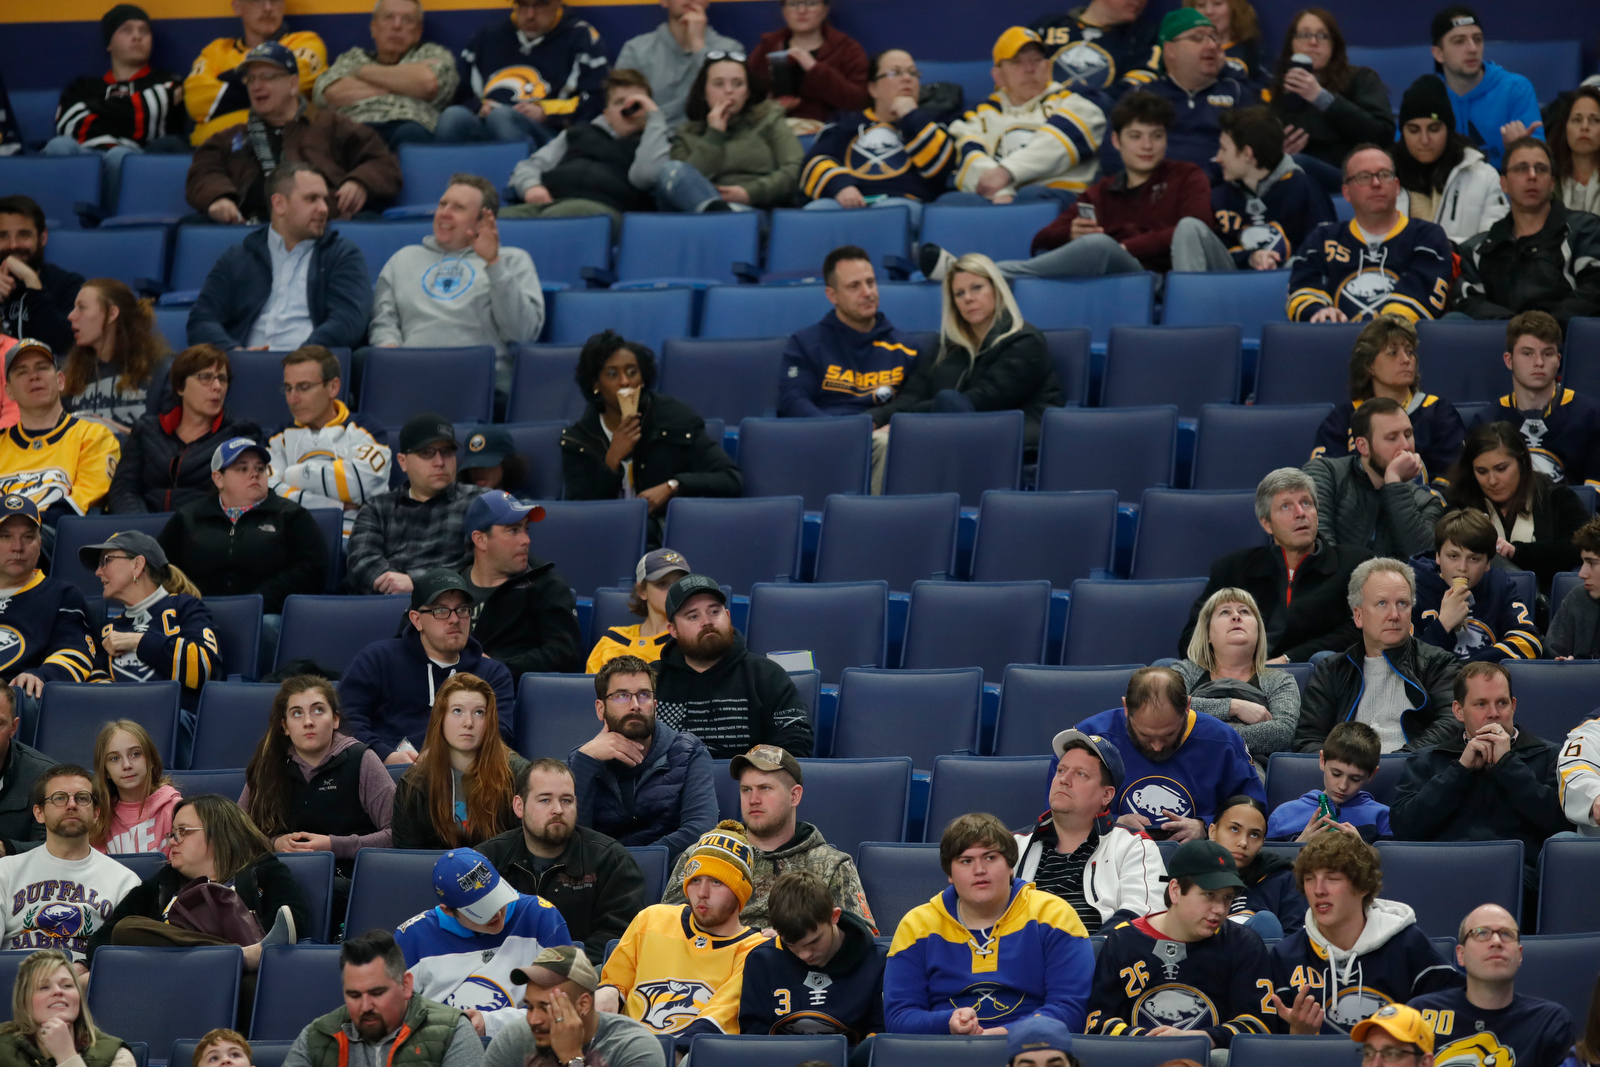 sabres use research to determine variable price increase